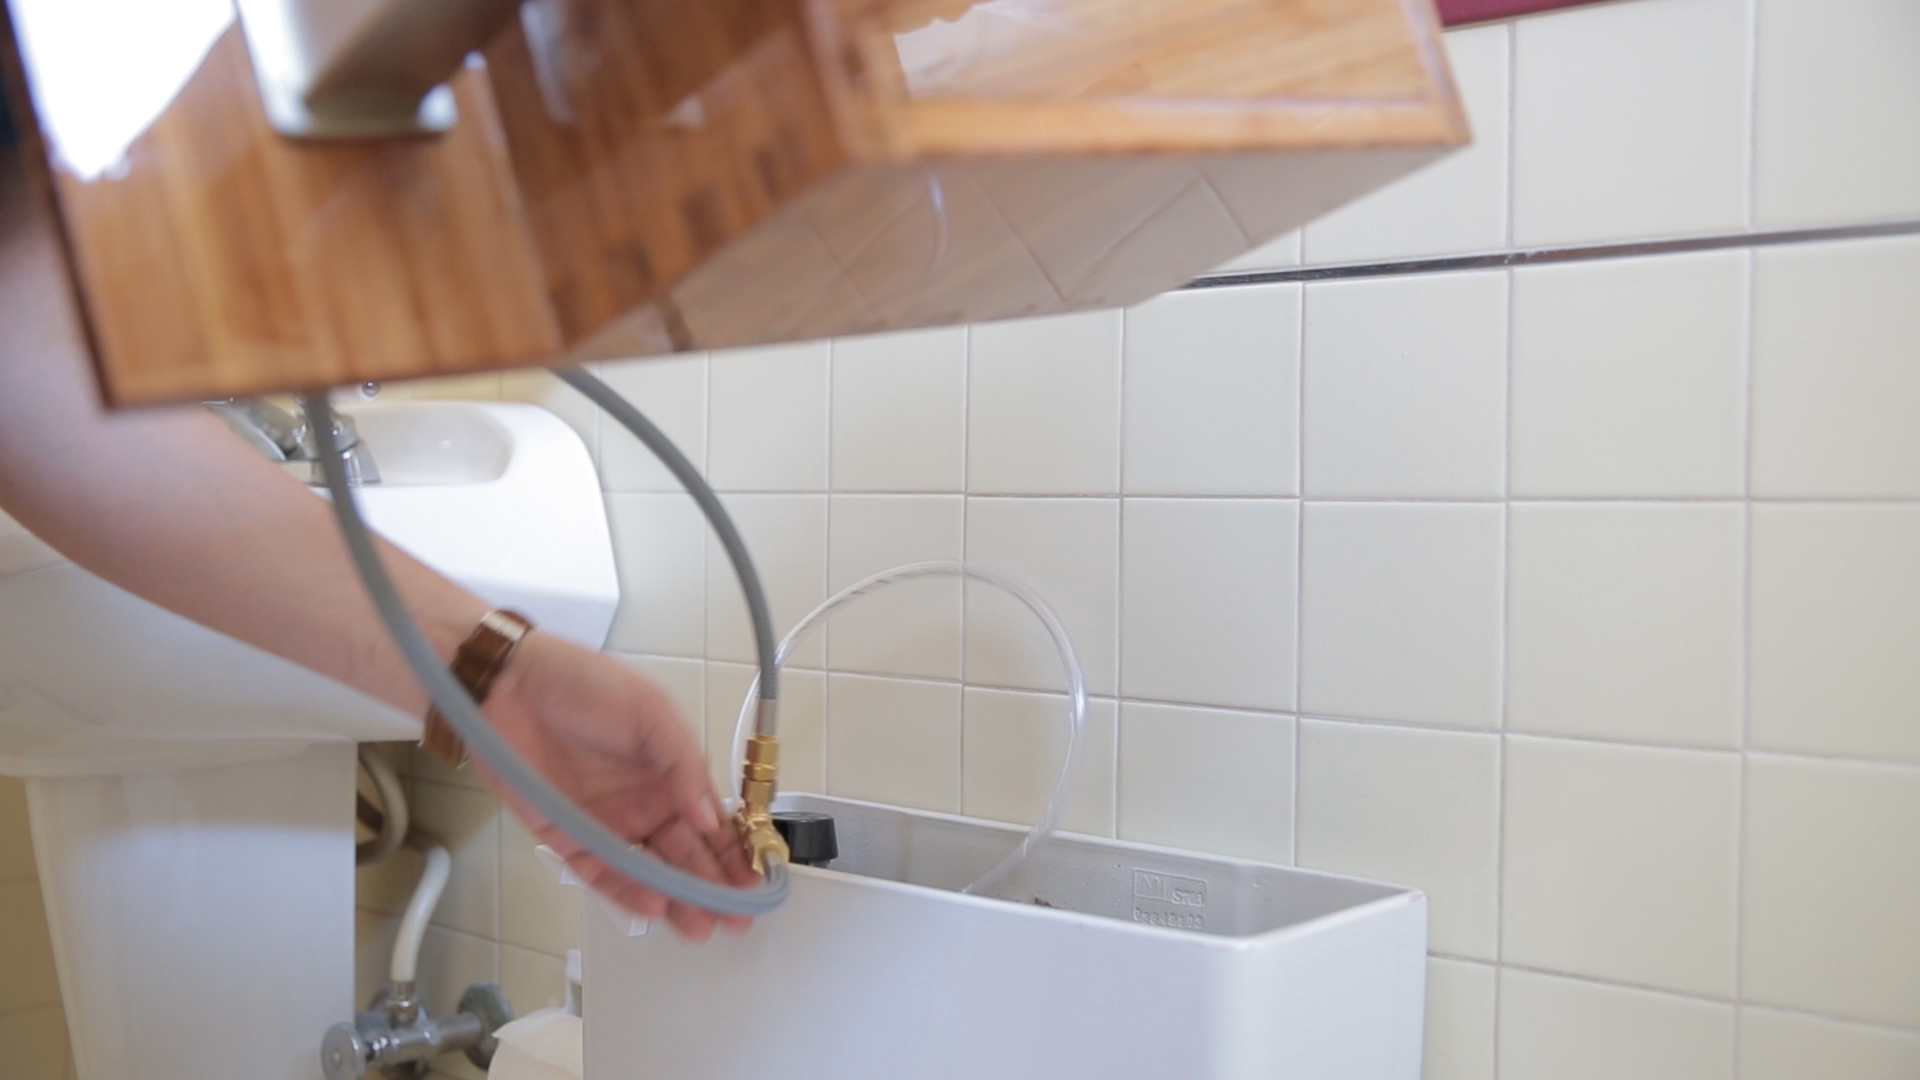 Picture of Attaching the Faucet and Pluming